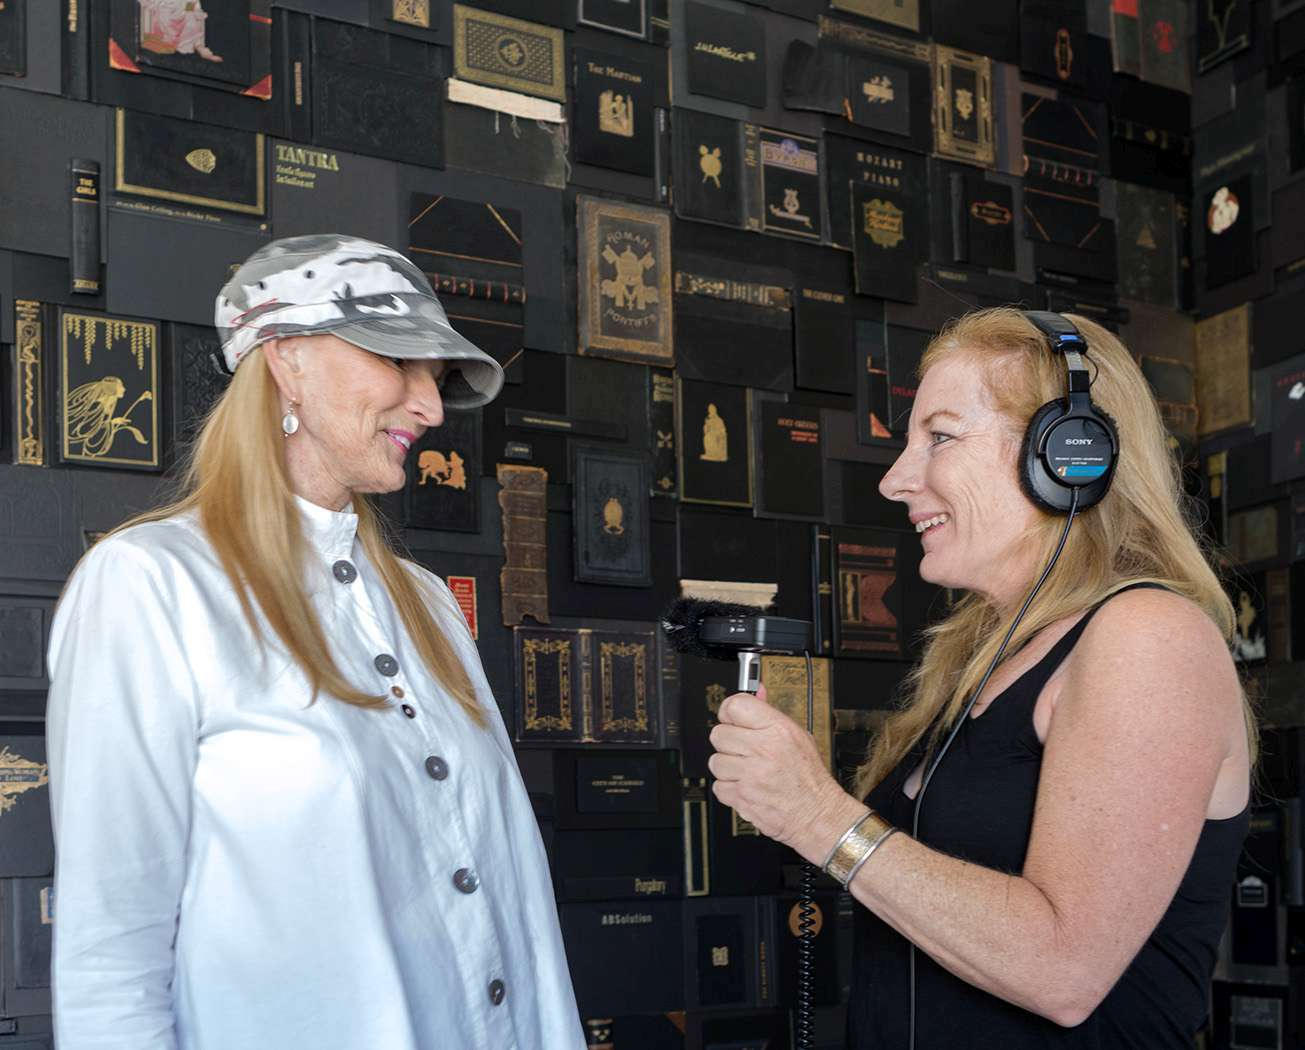 Lisa Osborn (r) interviews artist Nancy Gifford in front of Gifford's work, Lament, for a Lisa.FM podcast episode.  title=